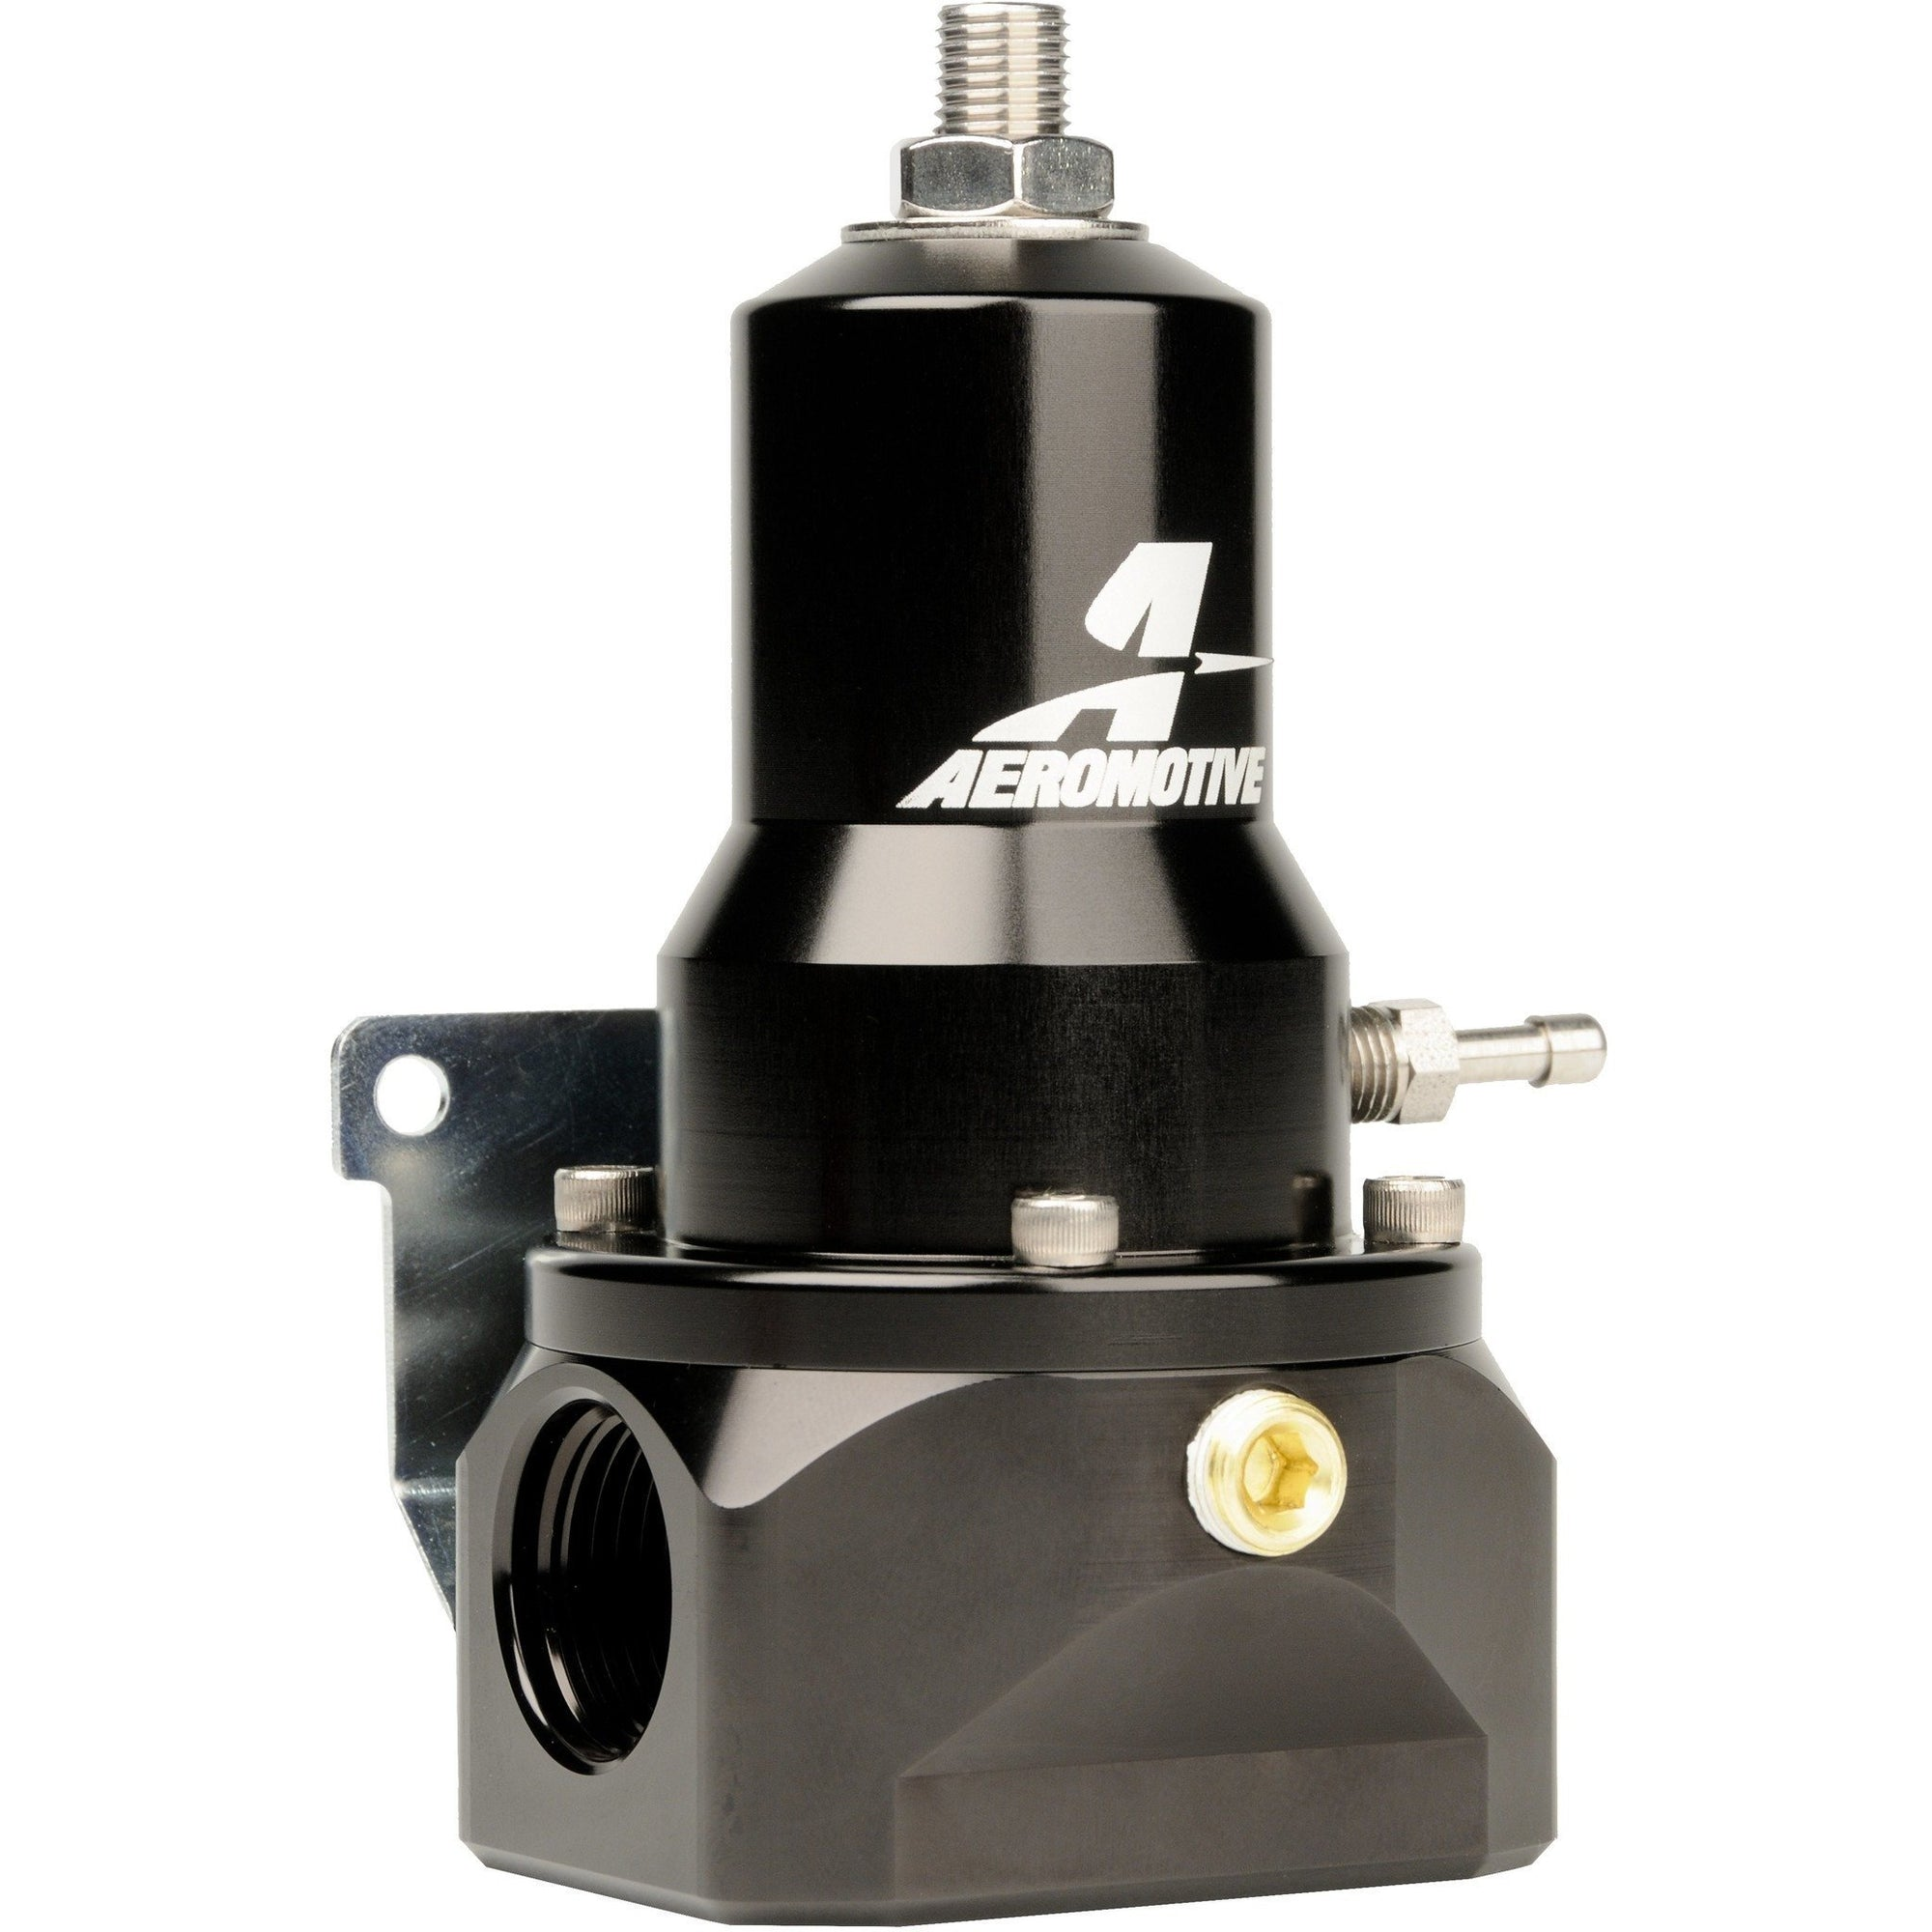 Aeromotive Extreme Flow EFI Regulator 2 port for 5GPM pump 13134-Aeromotive-Motion Raceworks